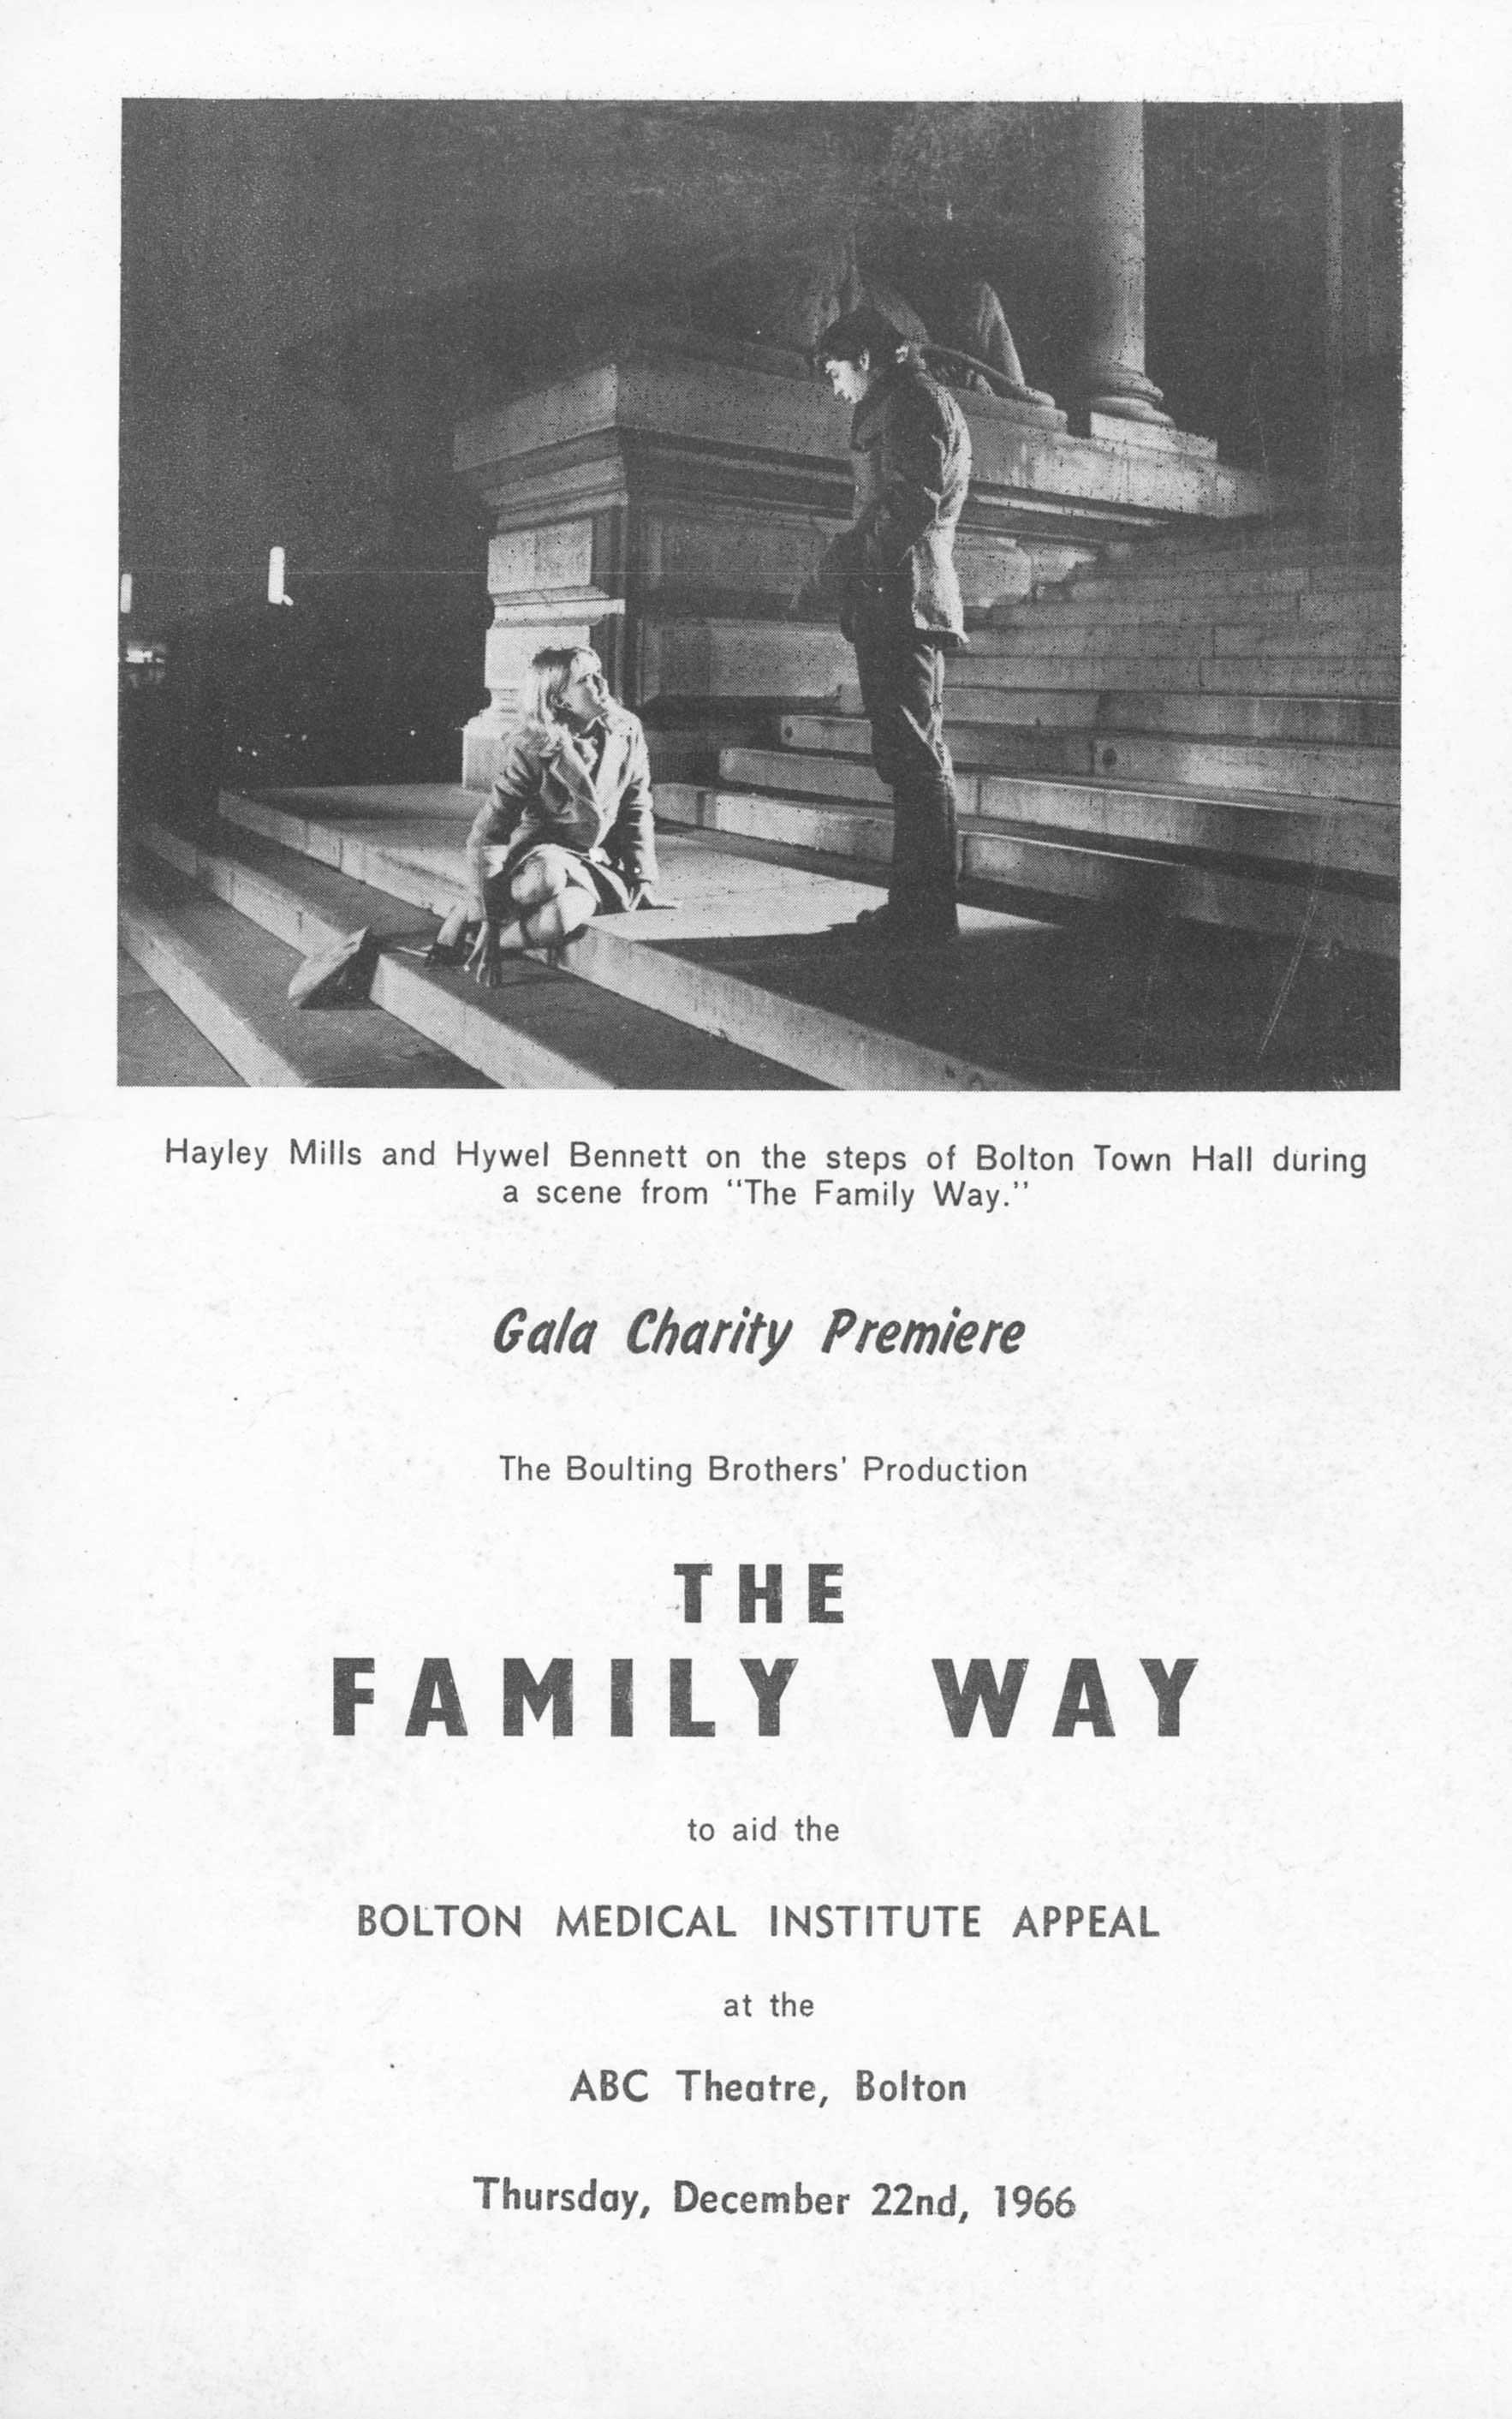 Charity programme for The family Way at the ABC Theatre